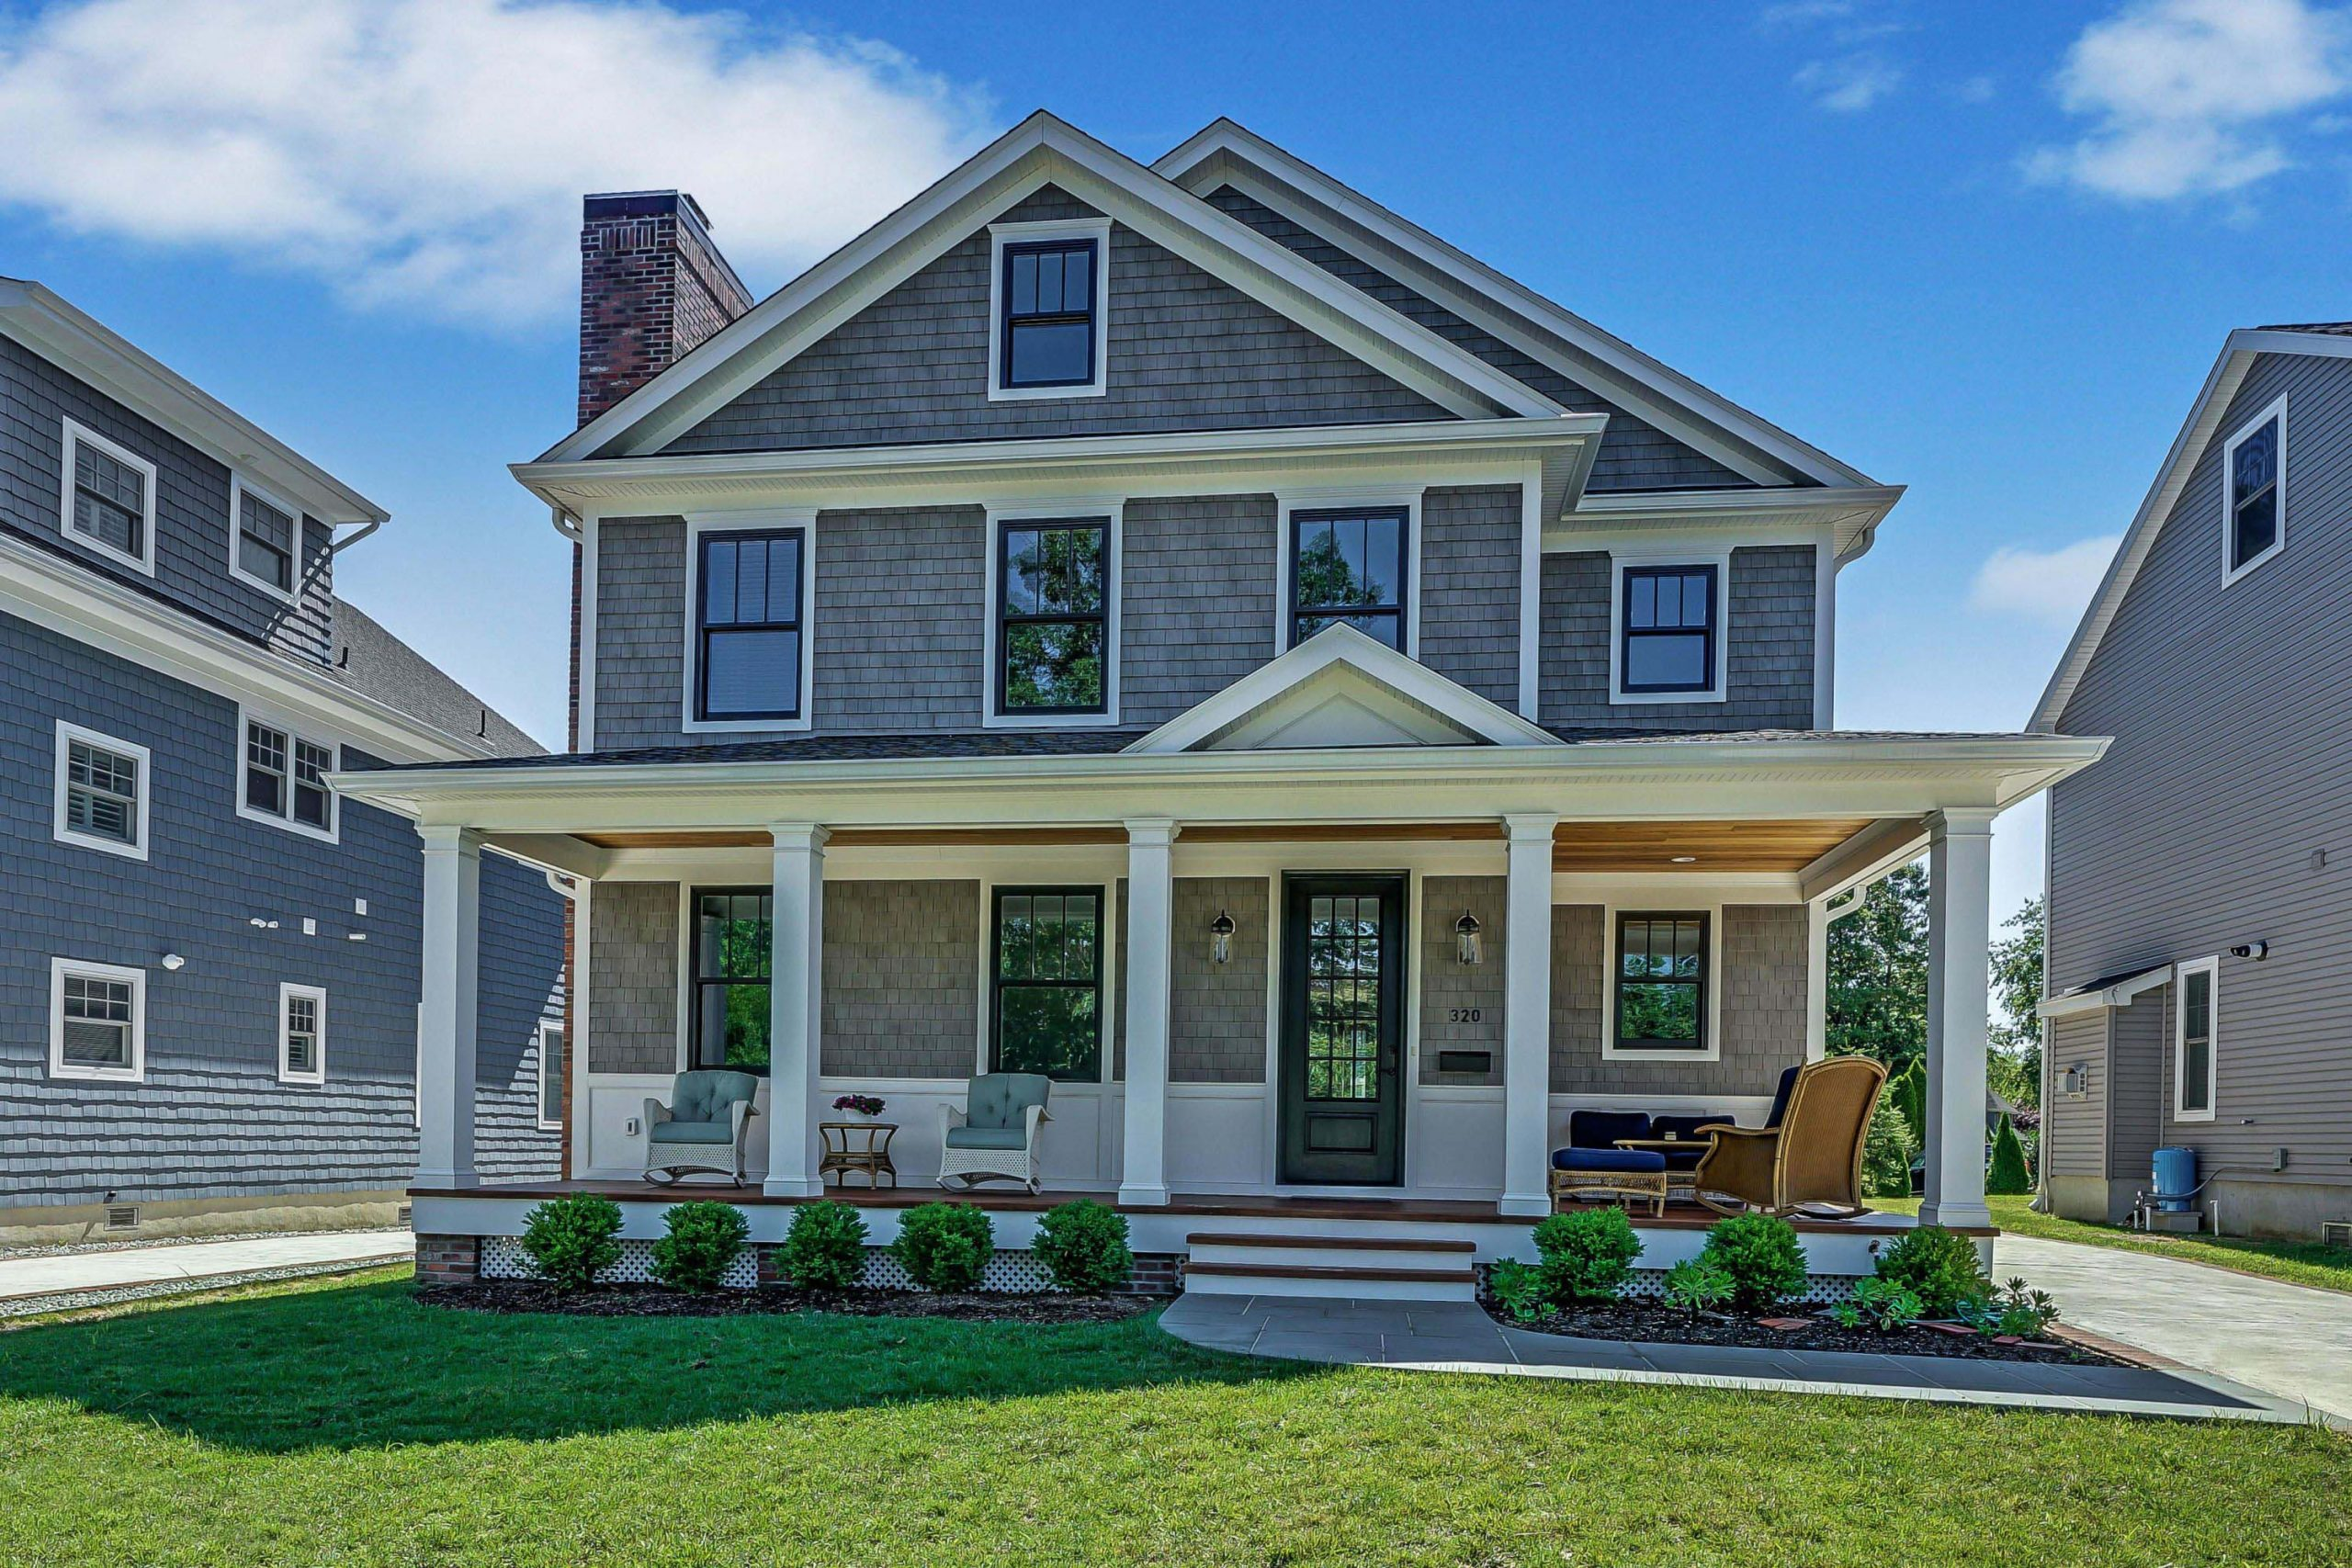 Natural gray cedar shake siding color with white trim and black framed windows, white wall paneling, wood decking, black front door, red brick chimney veneer, wood porch soffit, blue stone walk.